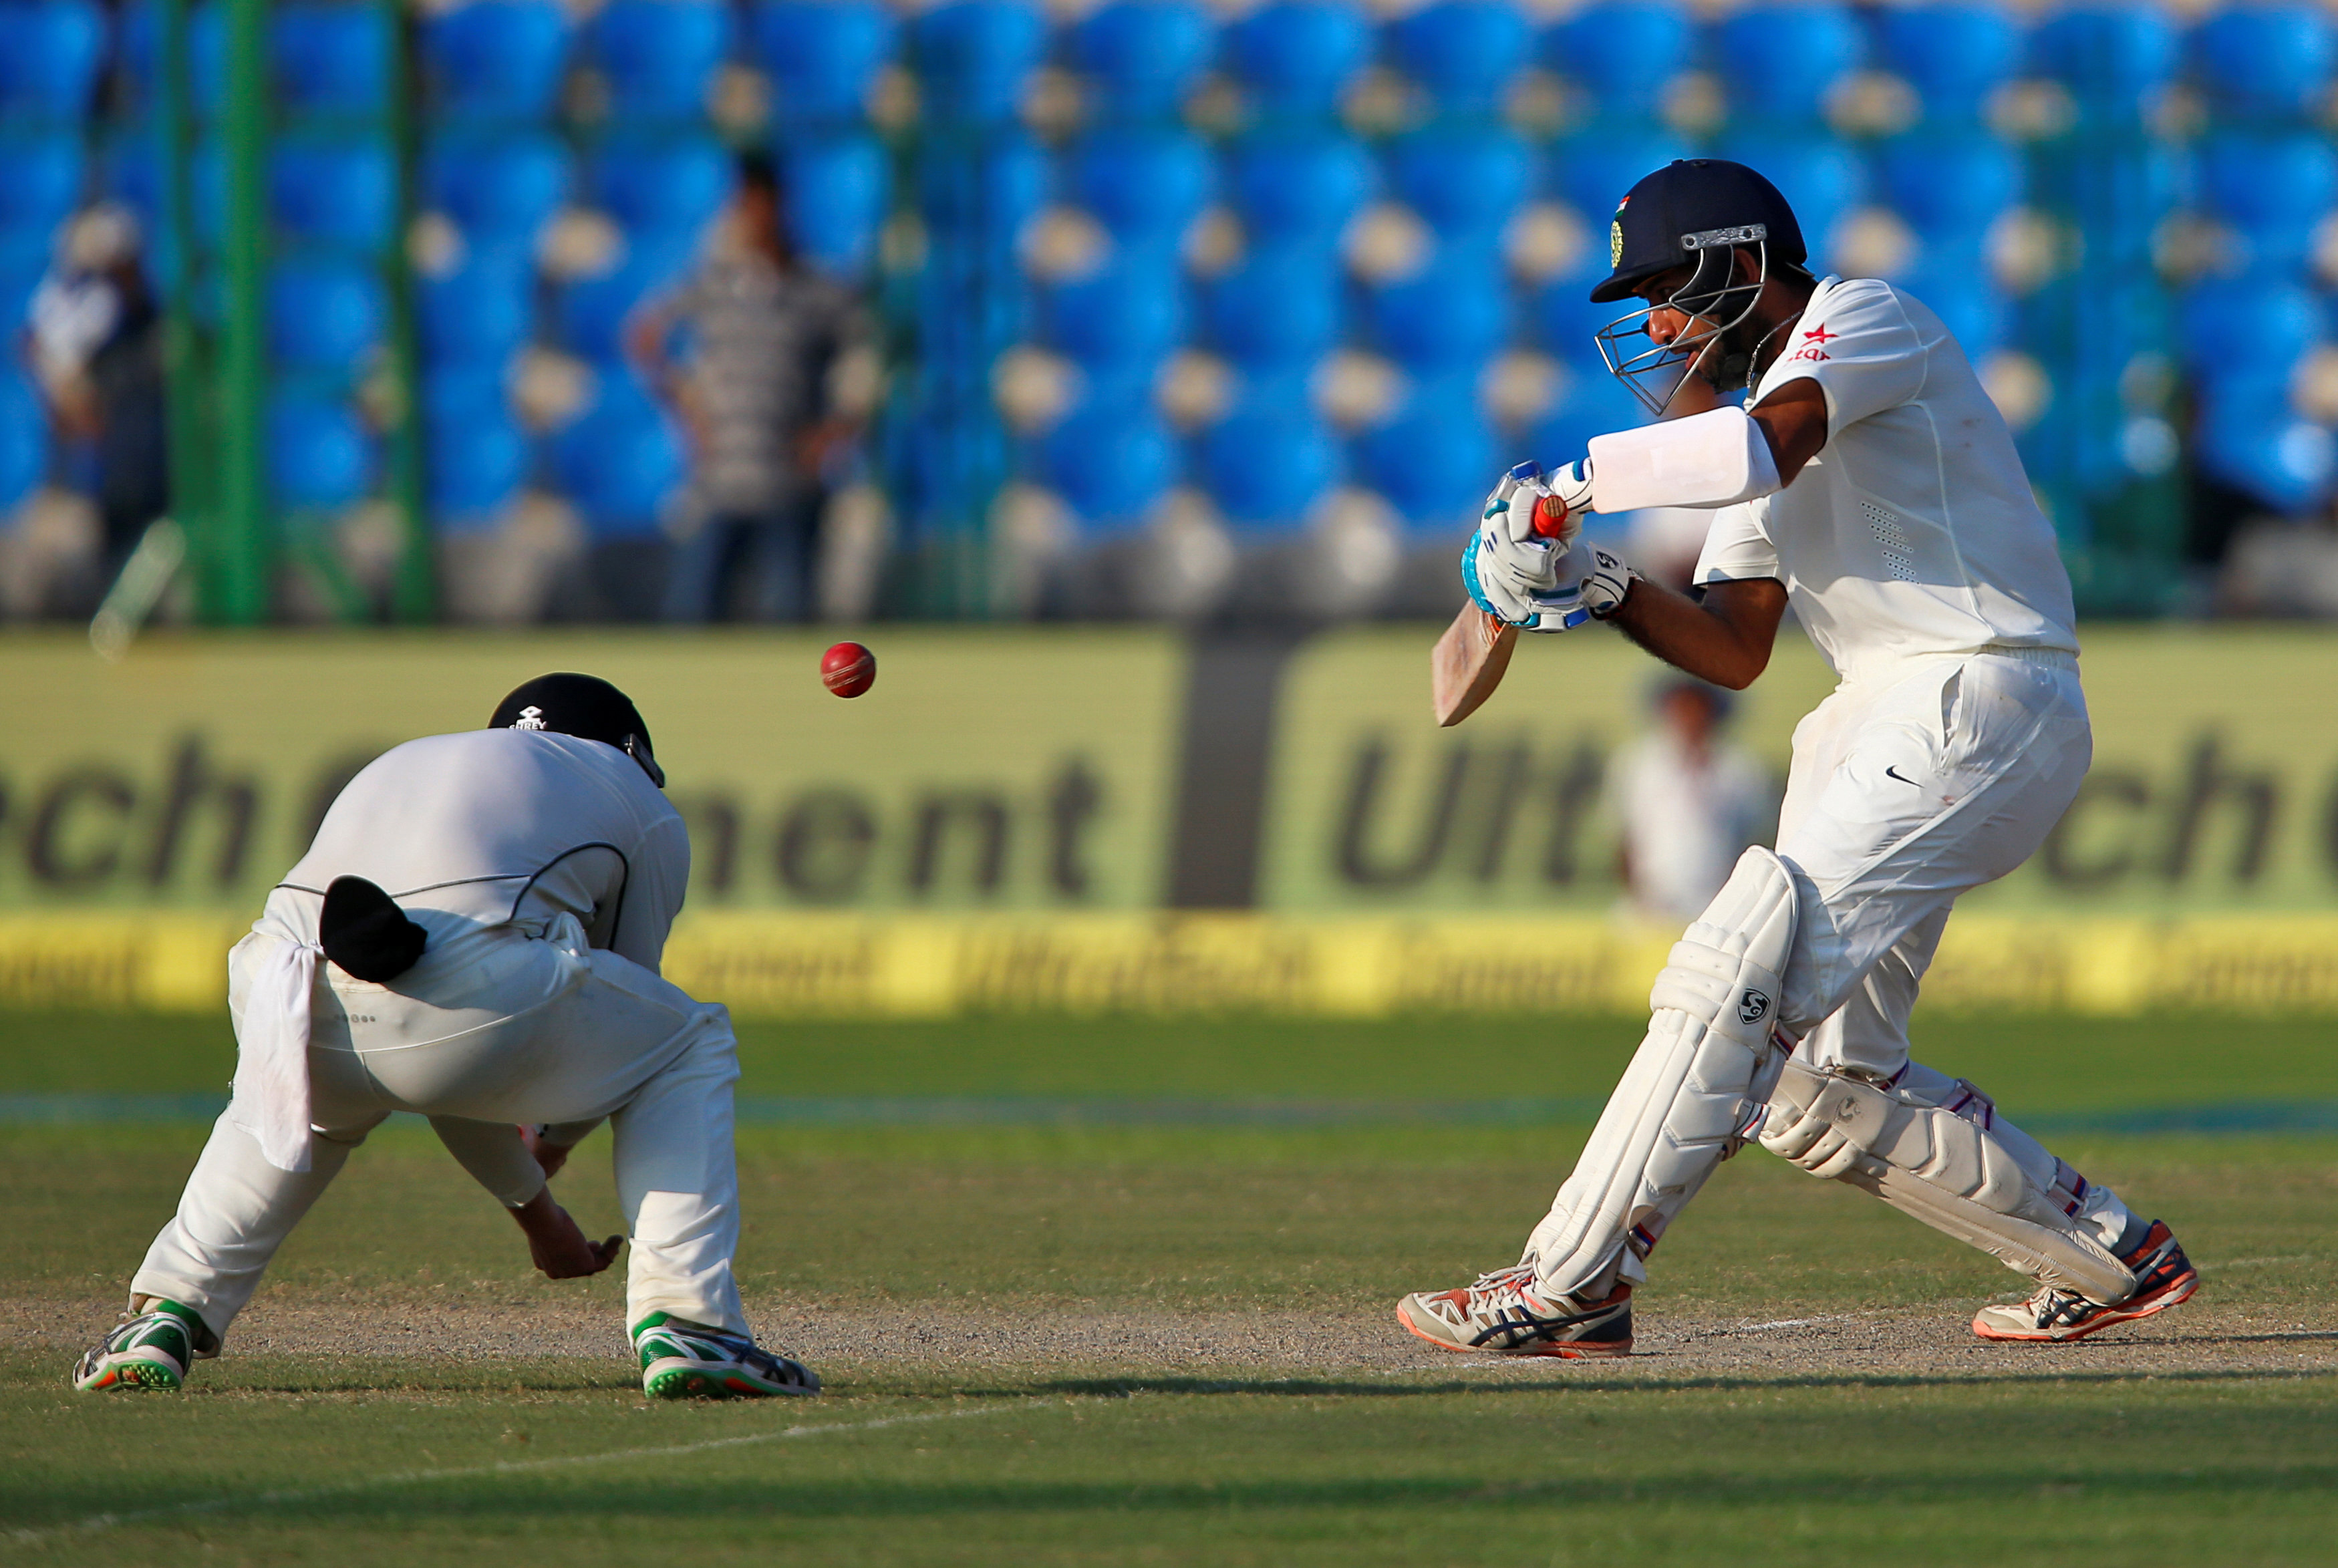 India's Cheteshwar Pujara plays a shot in the first test cricket match against at Green Park Stadium in Kanpur, India, on Saturday, September 24, 2016. Photo: Reuters